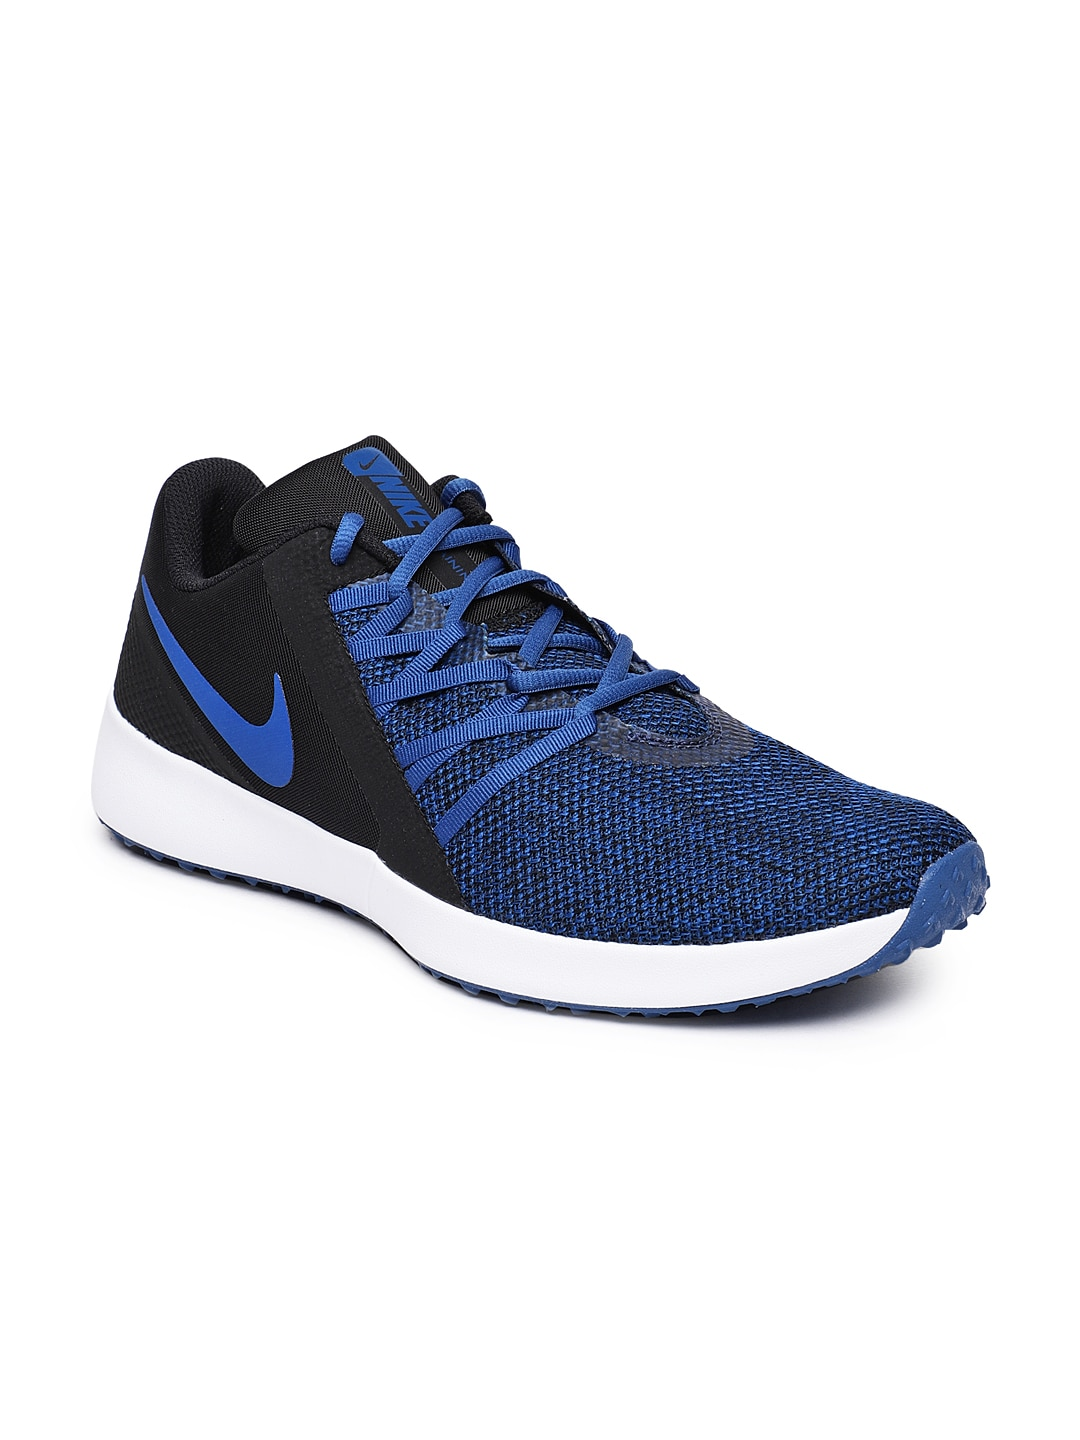 detailed look 242a5 24a92 Nike - Shop for Nike Apparels Online in India  Myntra